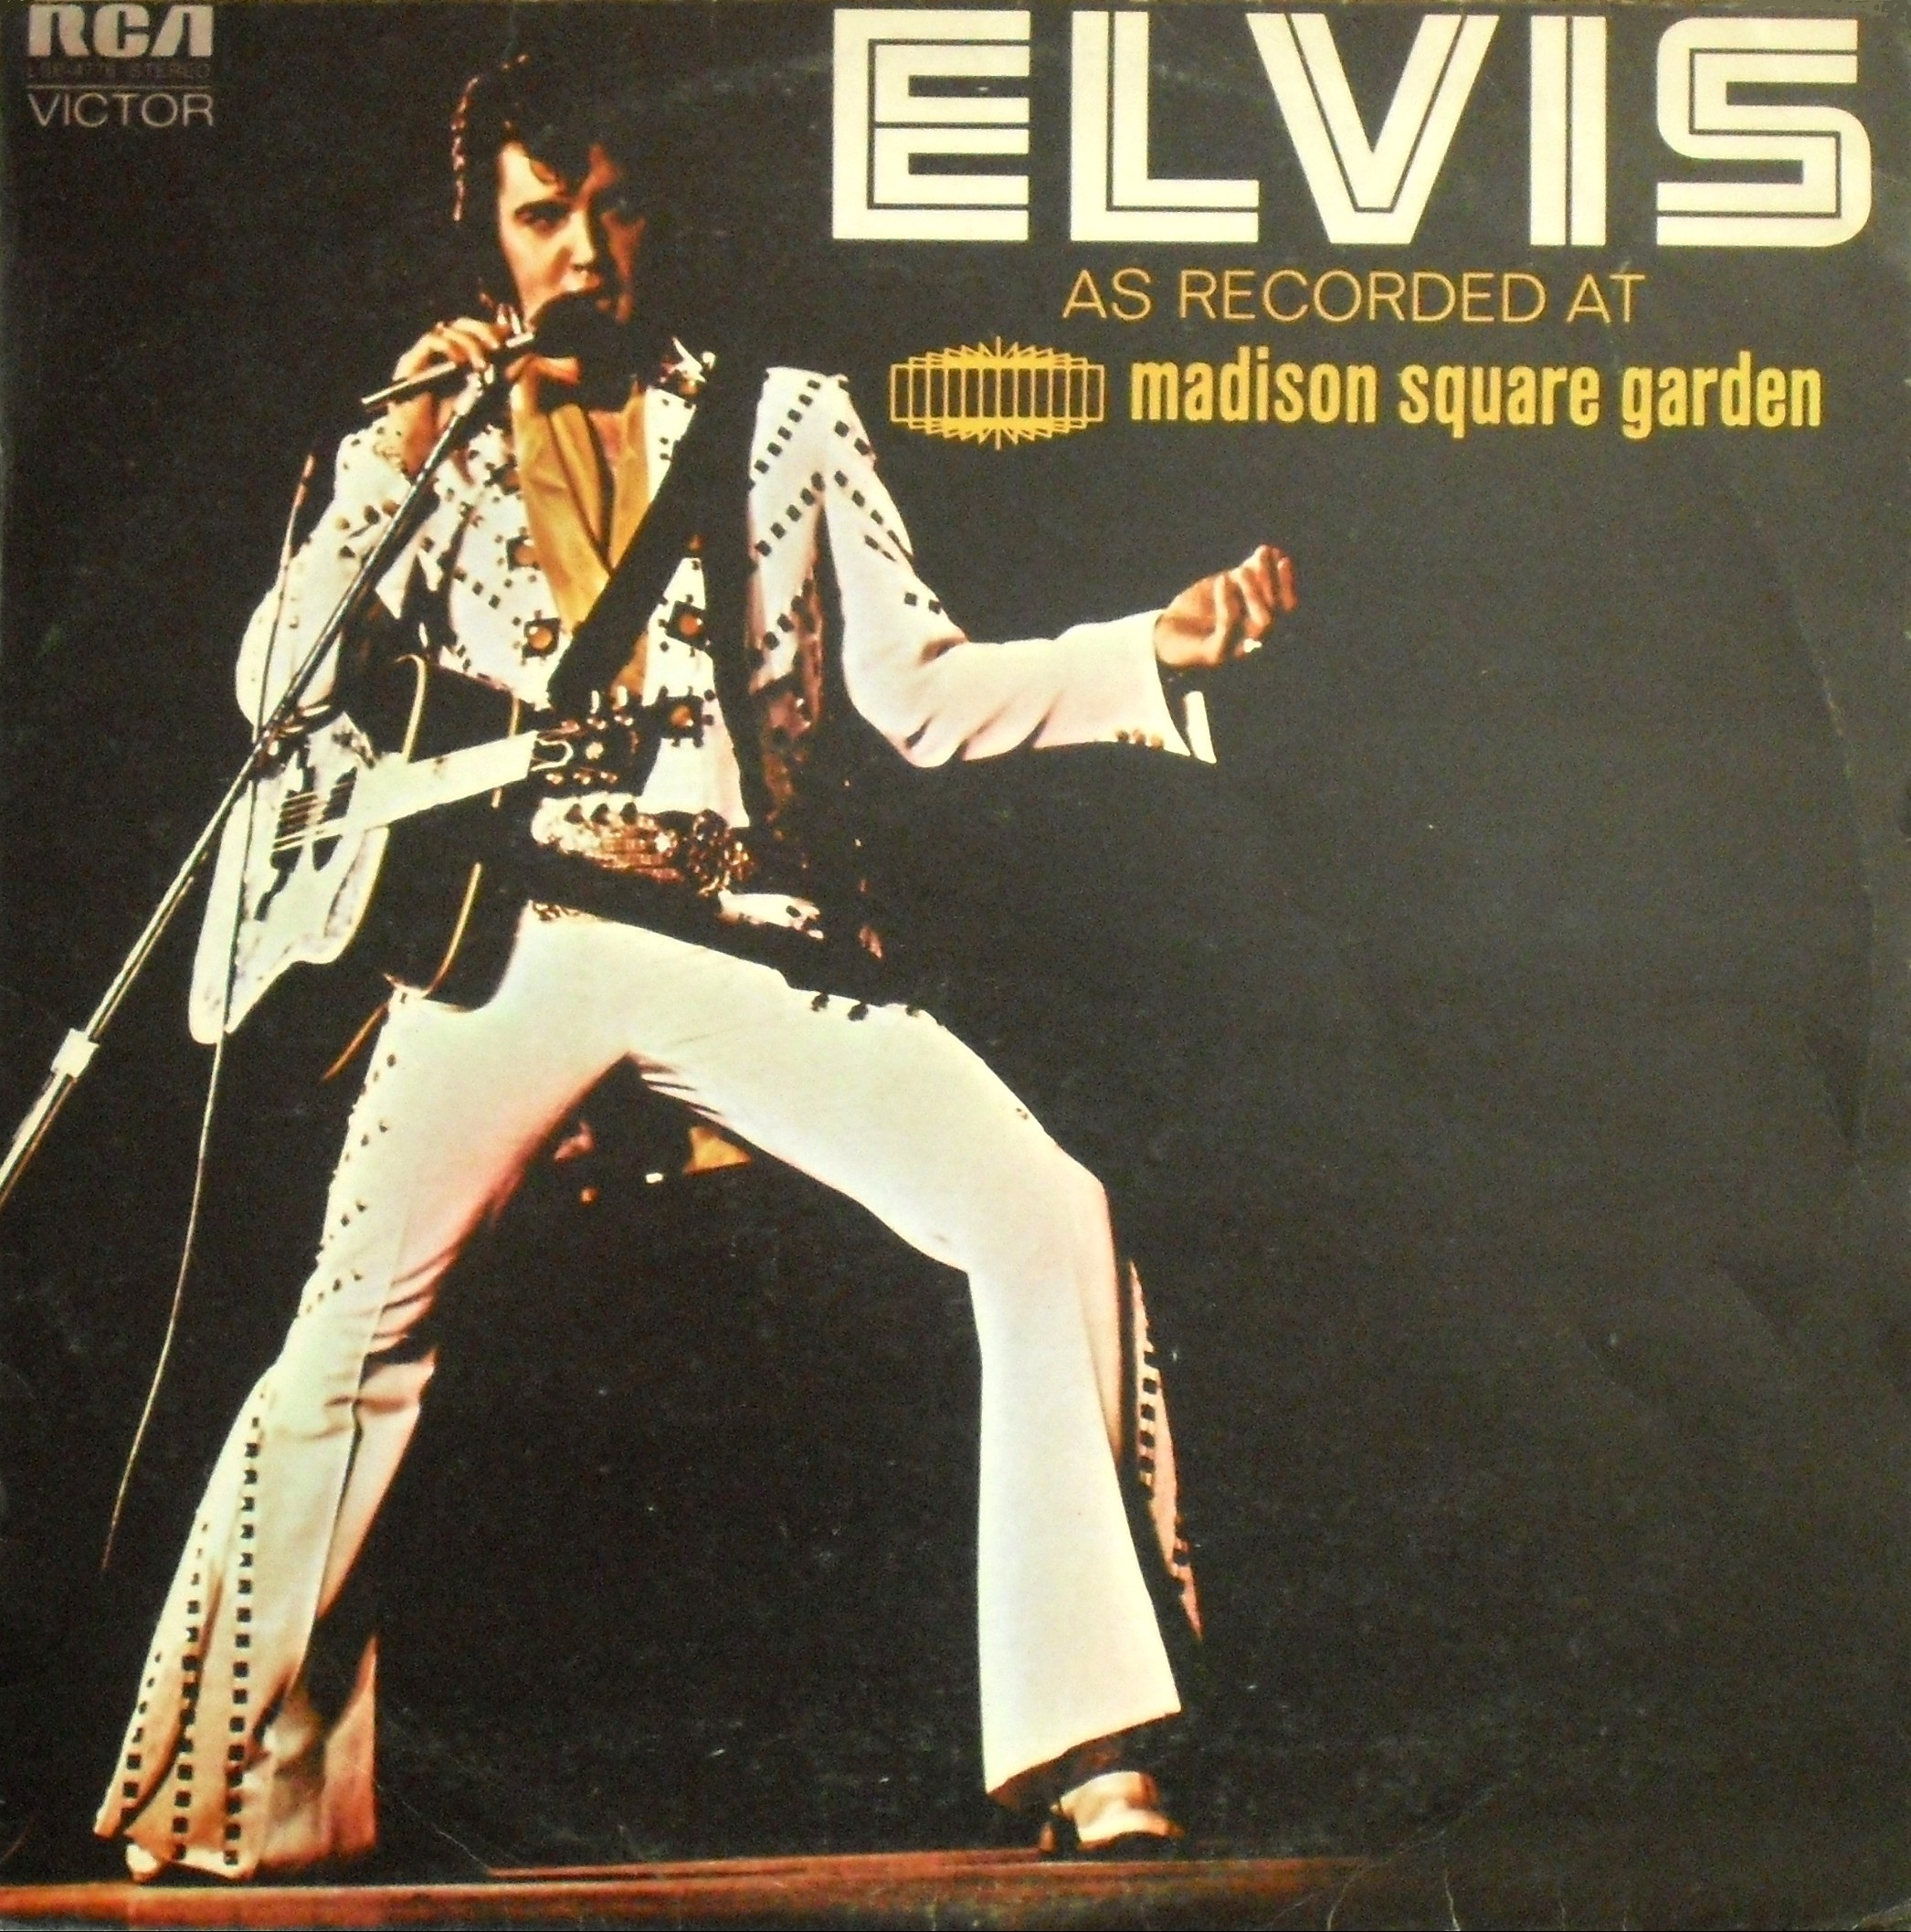 ELVIS AS RECORDED AT MADISON SQUARE GARDEN 01gus1w